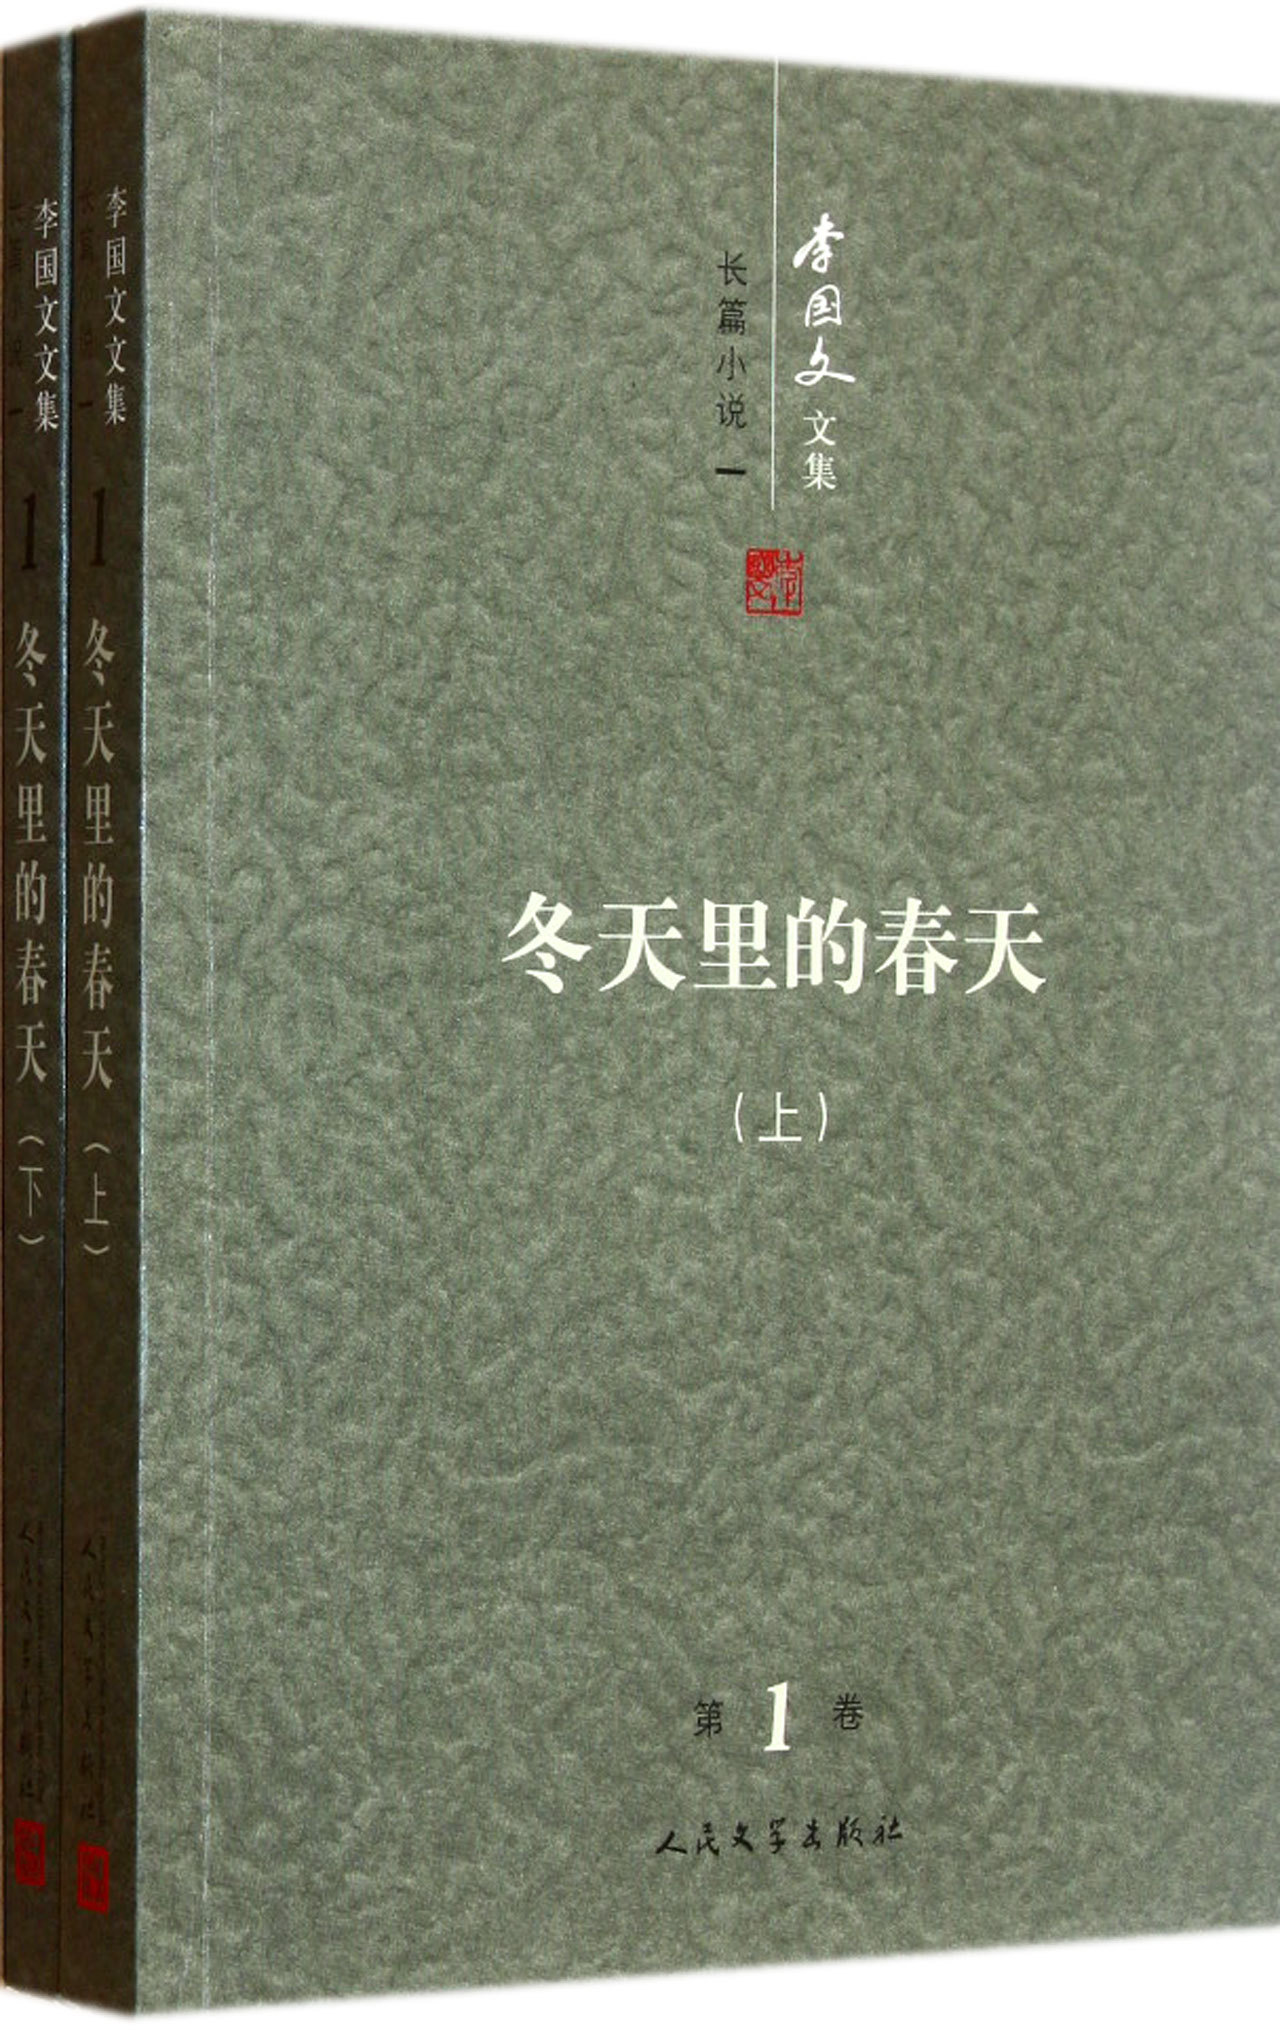 The Spring in Winter-Collection of Li Guowens Novels One-Vol.1 (Chinese Edition)冬天里的春天(上下)/李国文文集 Li Guowen李国文